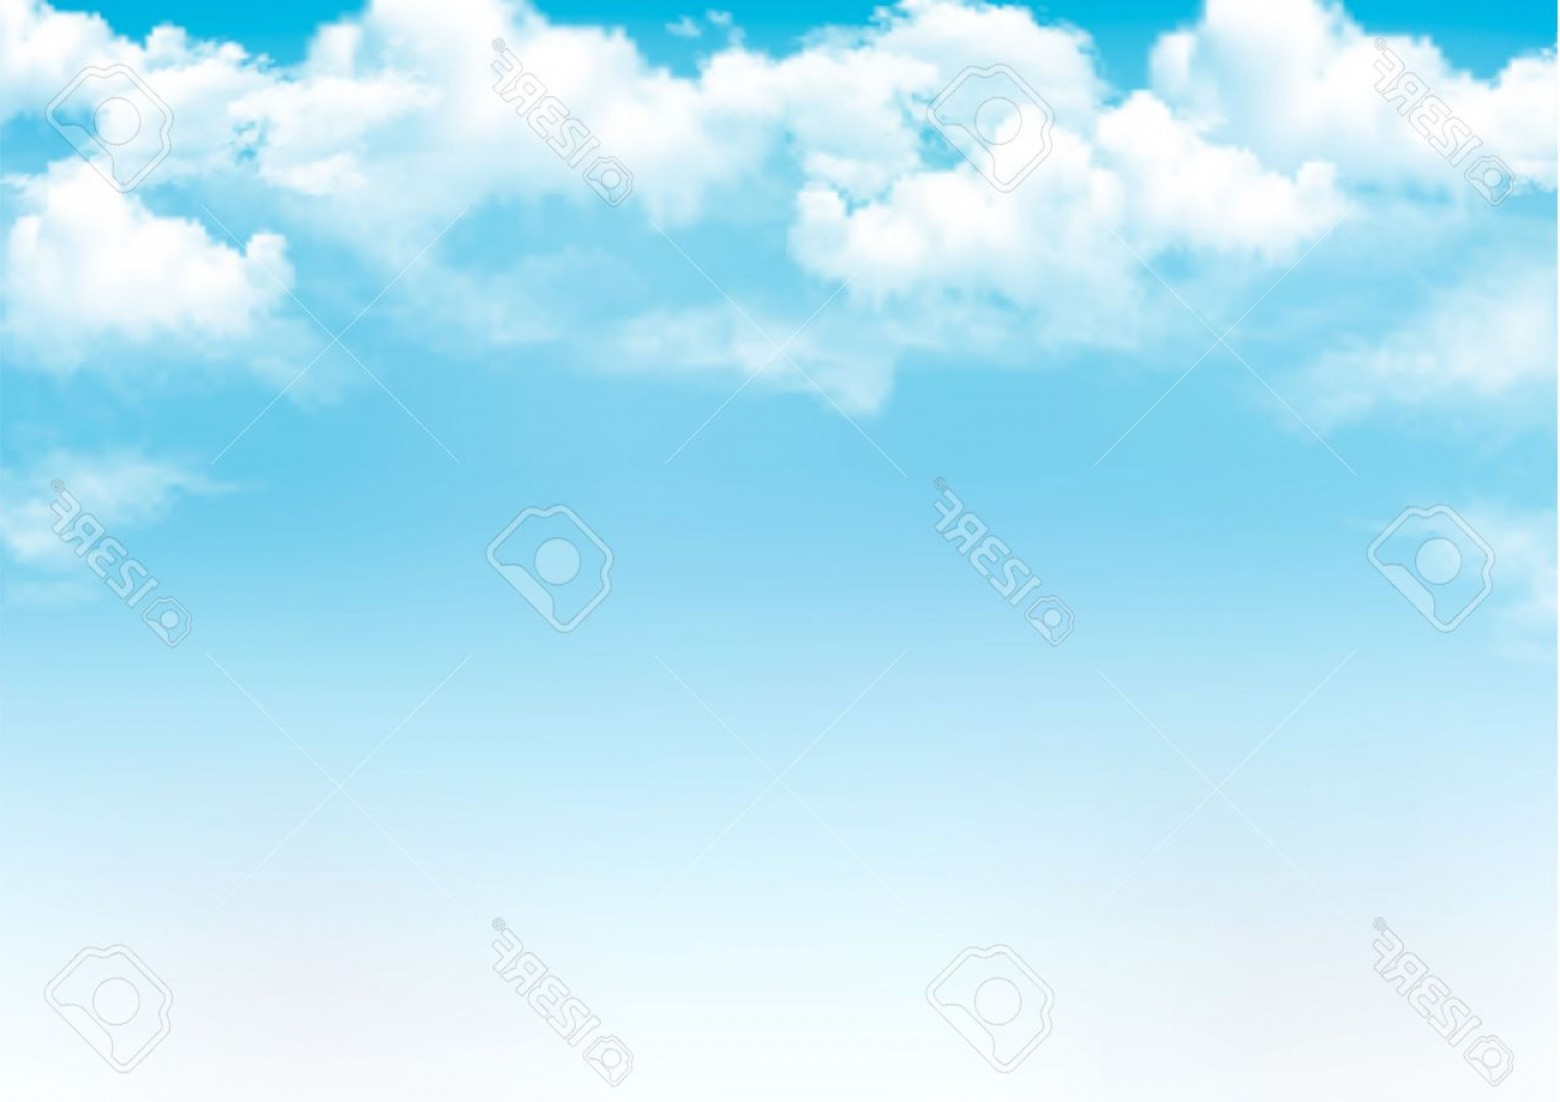 Clouds Backgrounds Vector: Photoblue Sky With Clouds Vector Background